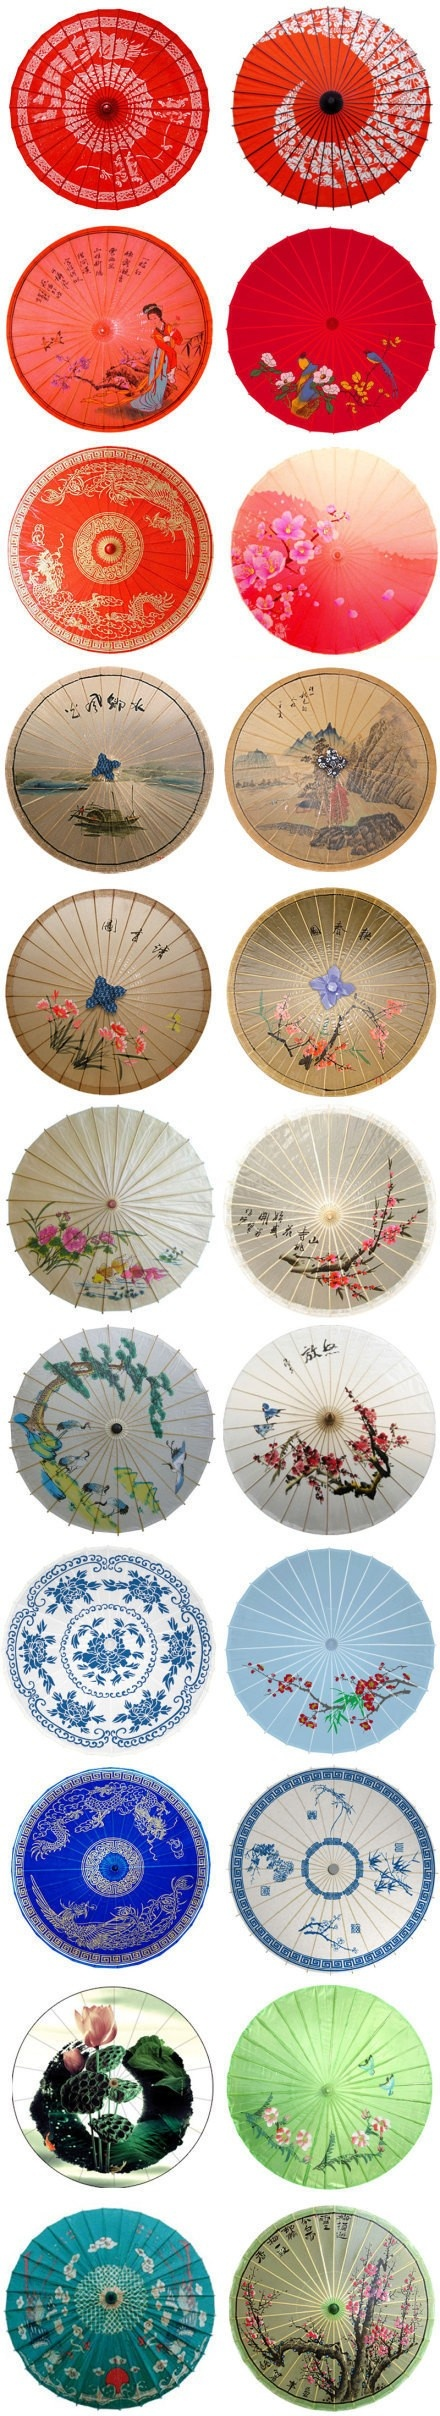 Paper umbrella is an original cooked on Tung oil-coated cotton paper cloth cover umbrella, it is not only for sun visor, but is an indispensable item of wedding etiquette, in the chinese traditional wedding, it used for the bride to ward off evil spirits with red paper umbrella.